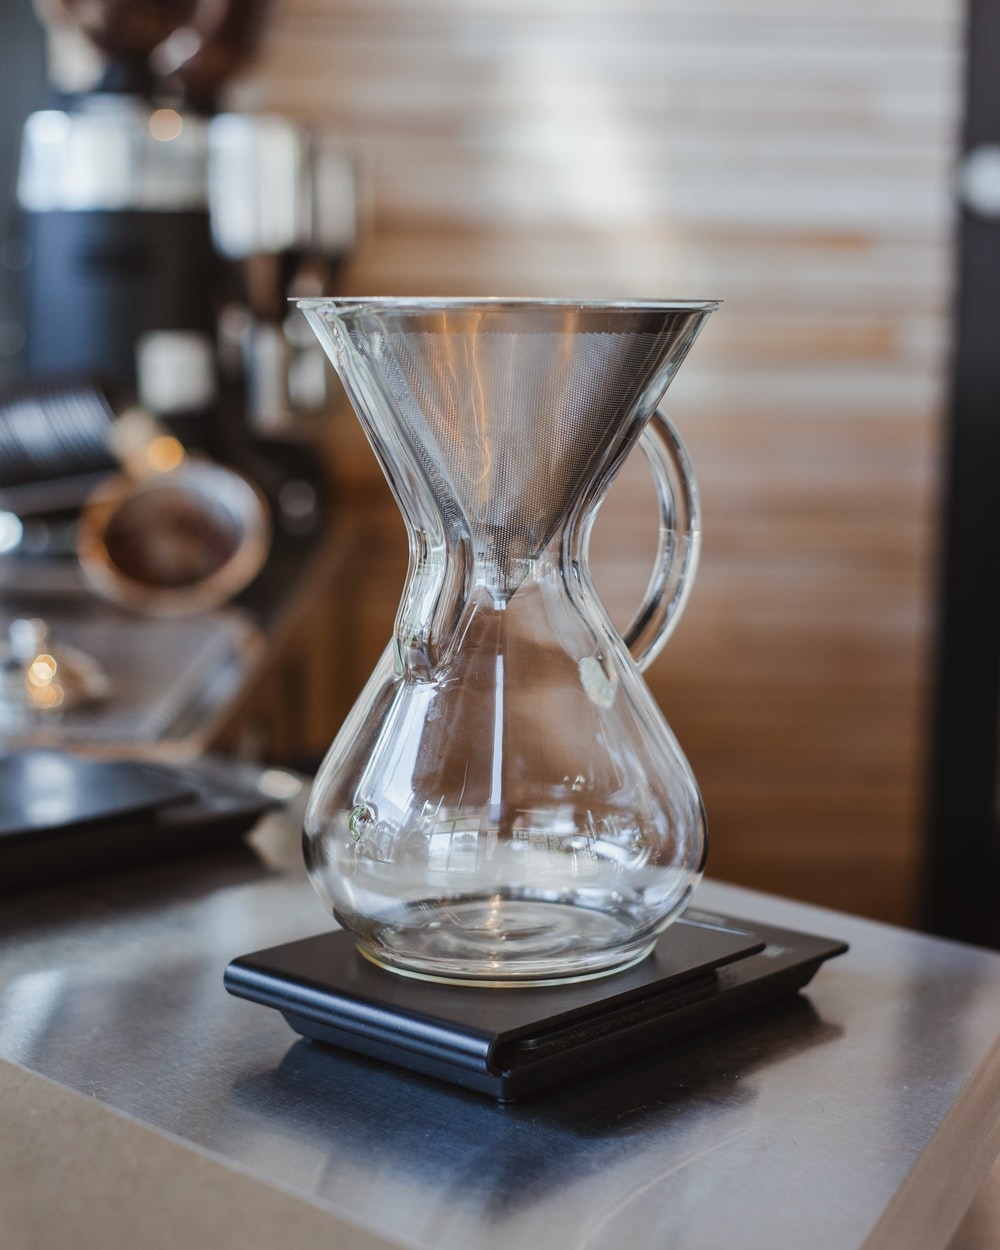 clear glass vase on black table